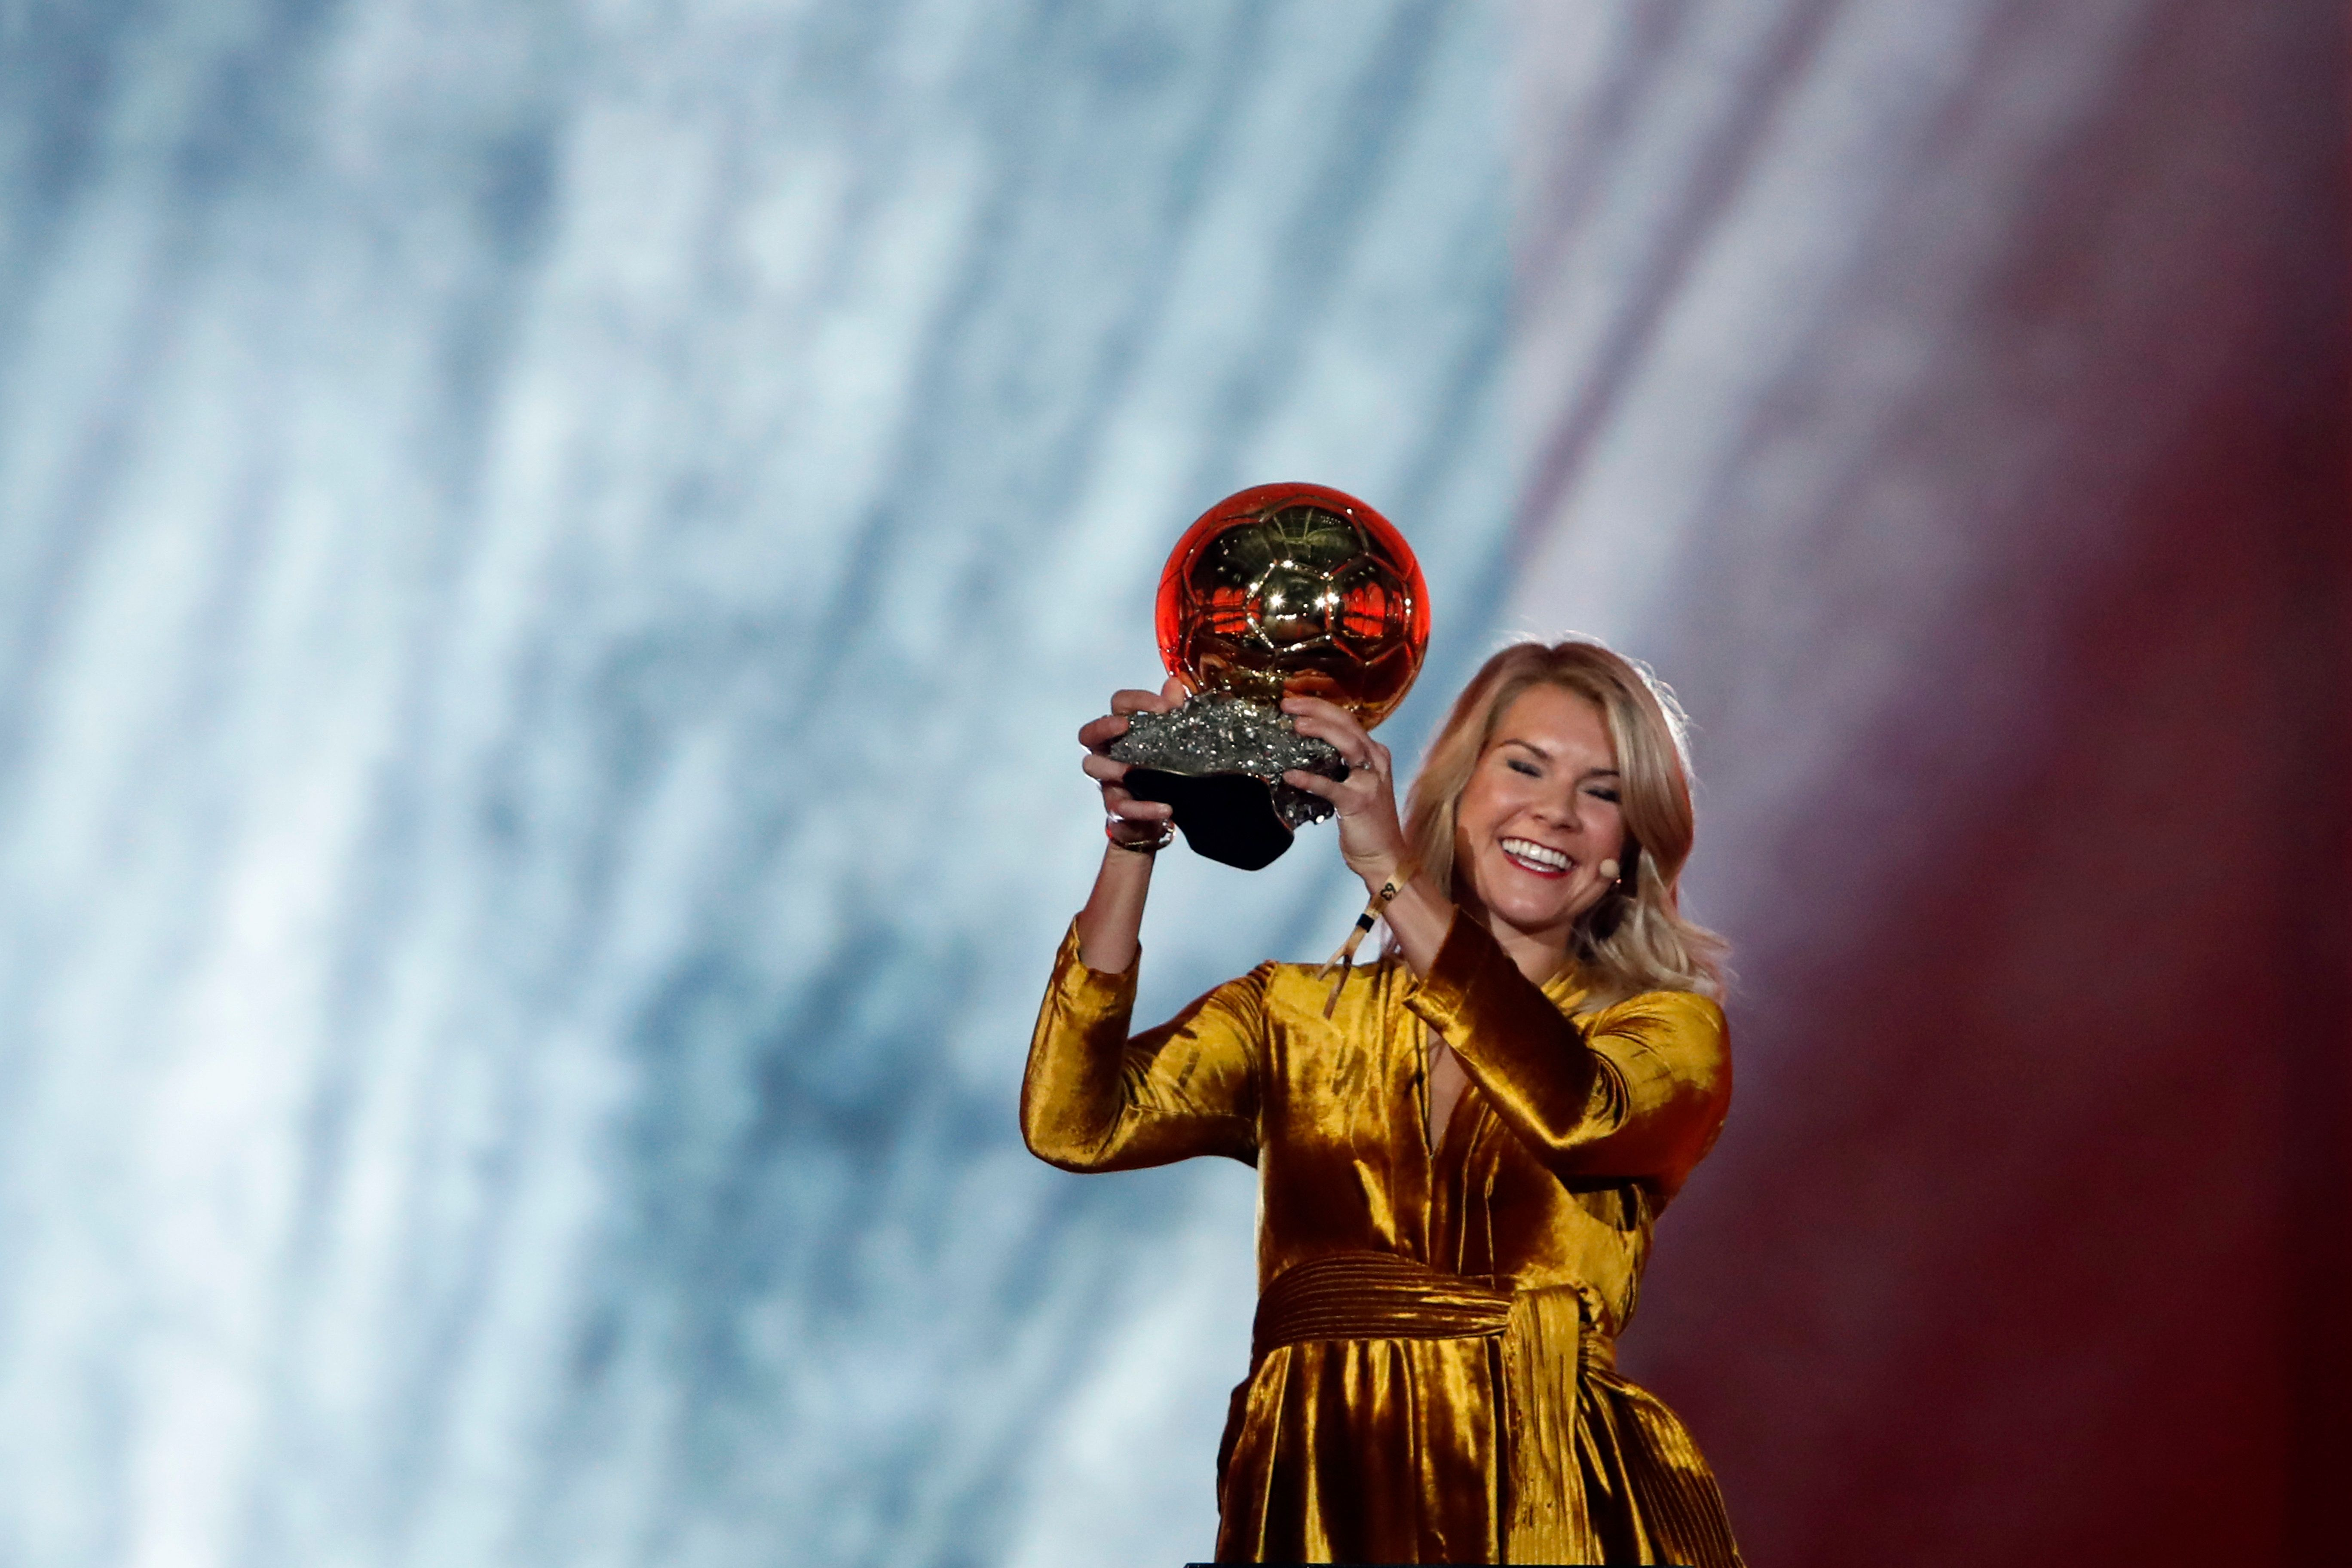 Female Footballer Wins Historic Award, Is Promptly Asked If She Can